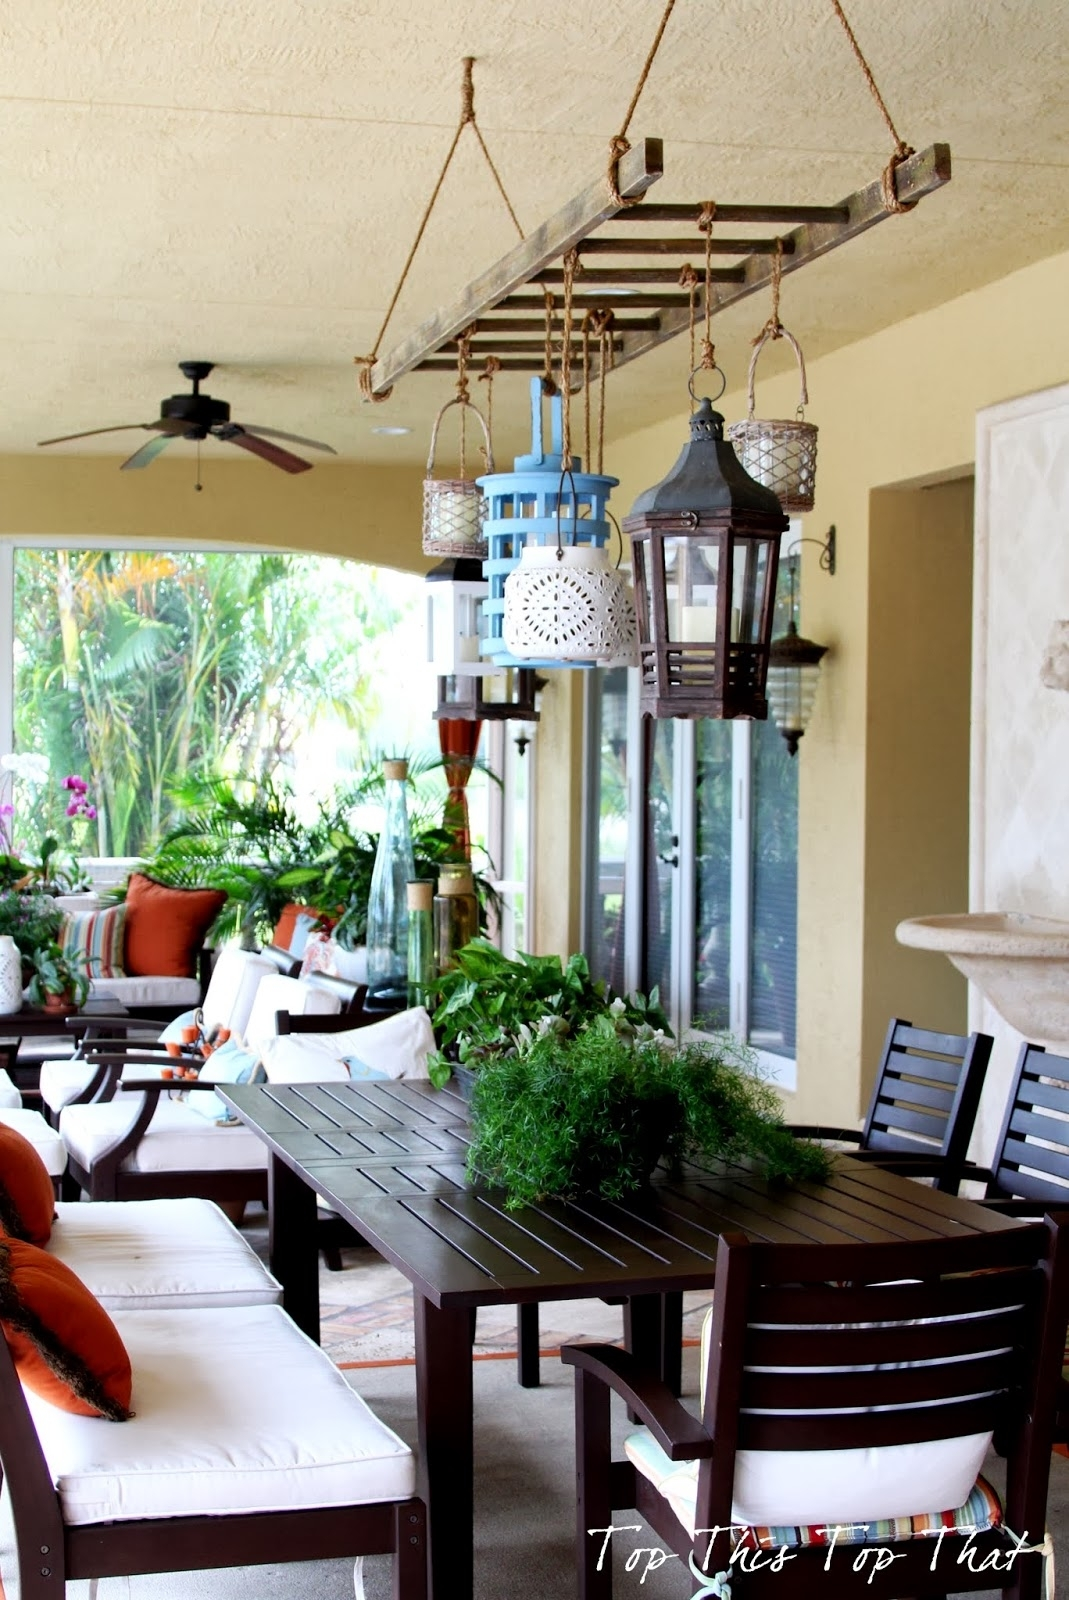 Outdoor Hanging Lanterns For Patio Decorate Ideas Simple At Lantern With Outdoor Hanging Patio Lanterns (View 2 of 15)